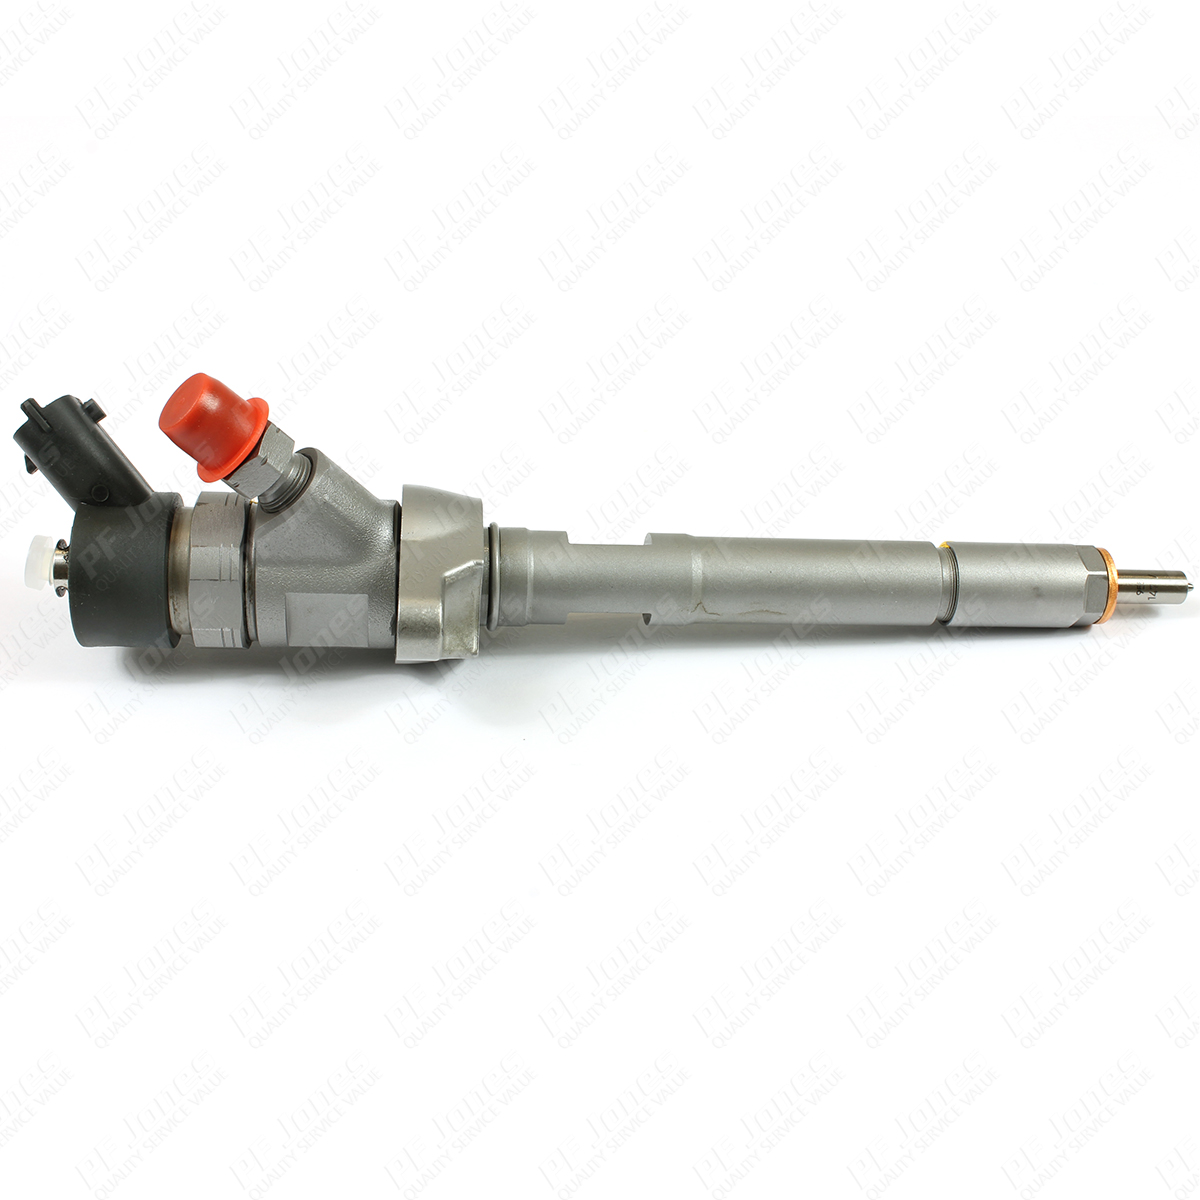 Ford Focus/Focus C-Max 1.6 TDCI 2004-2011 Reconditioned Bosch Diesel Injector 0445110239